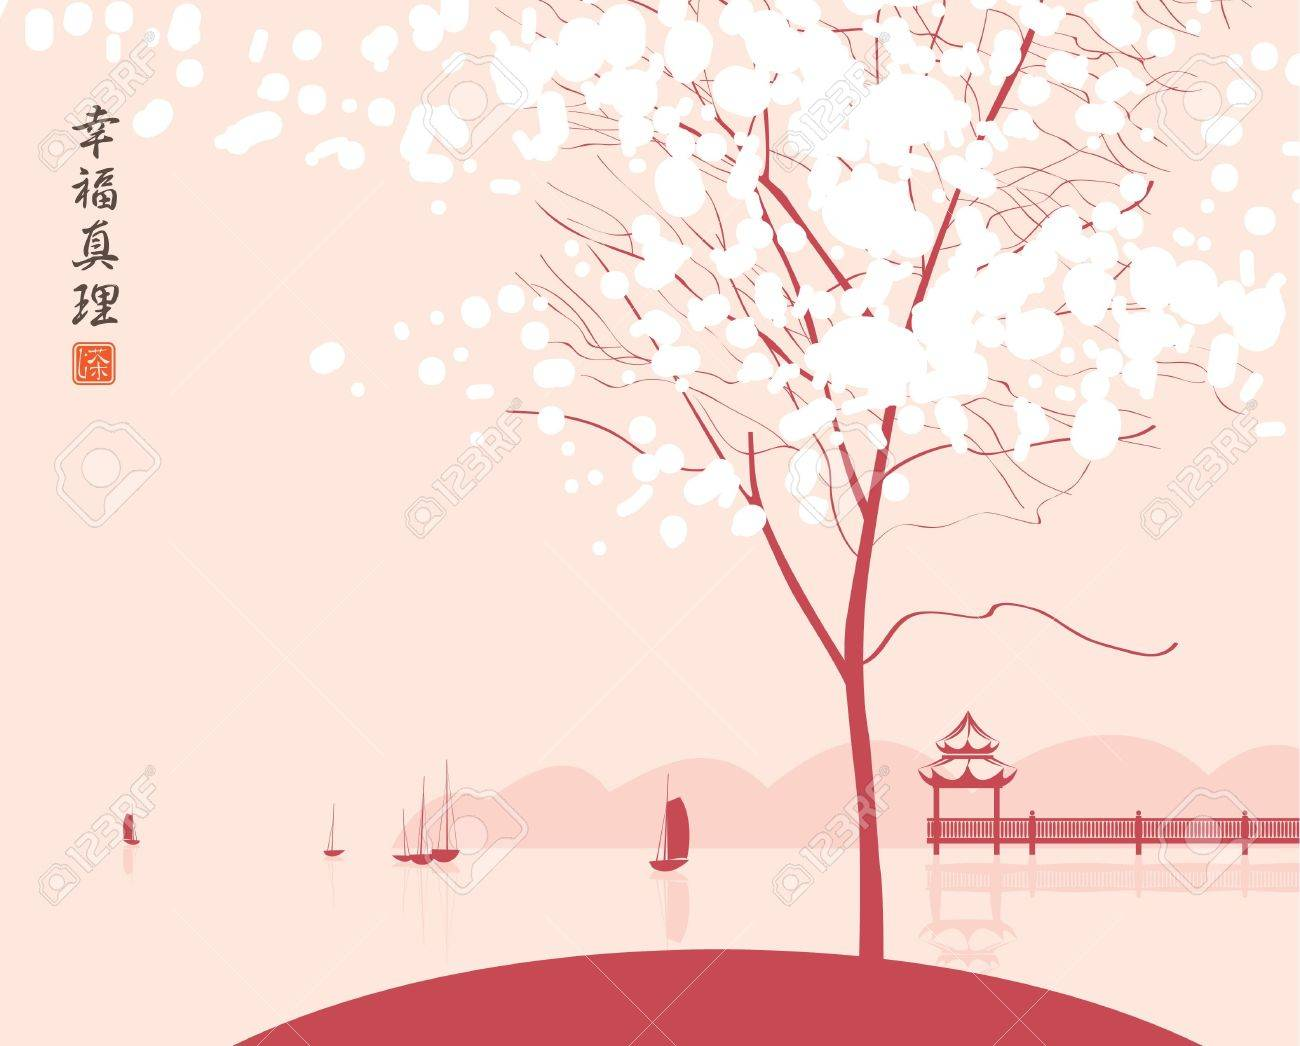 Spring landscape in the style of Chinese watercolor painting with tree and lake with boats 1057;haracters Happiness and Truth - 21169768